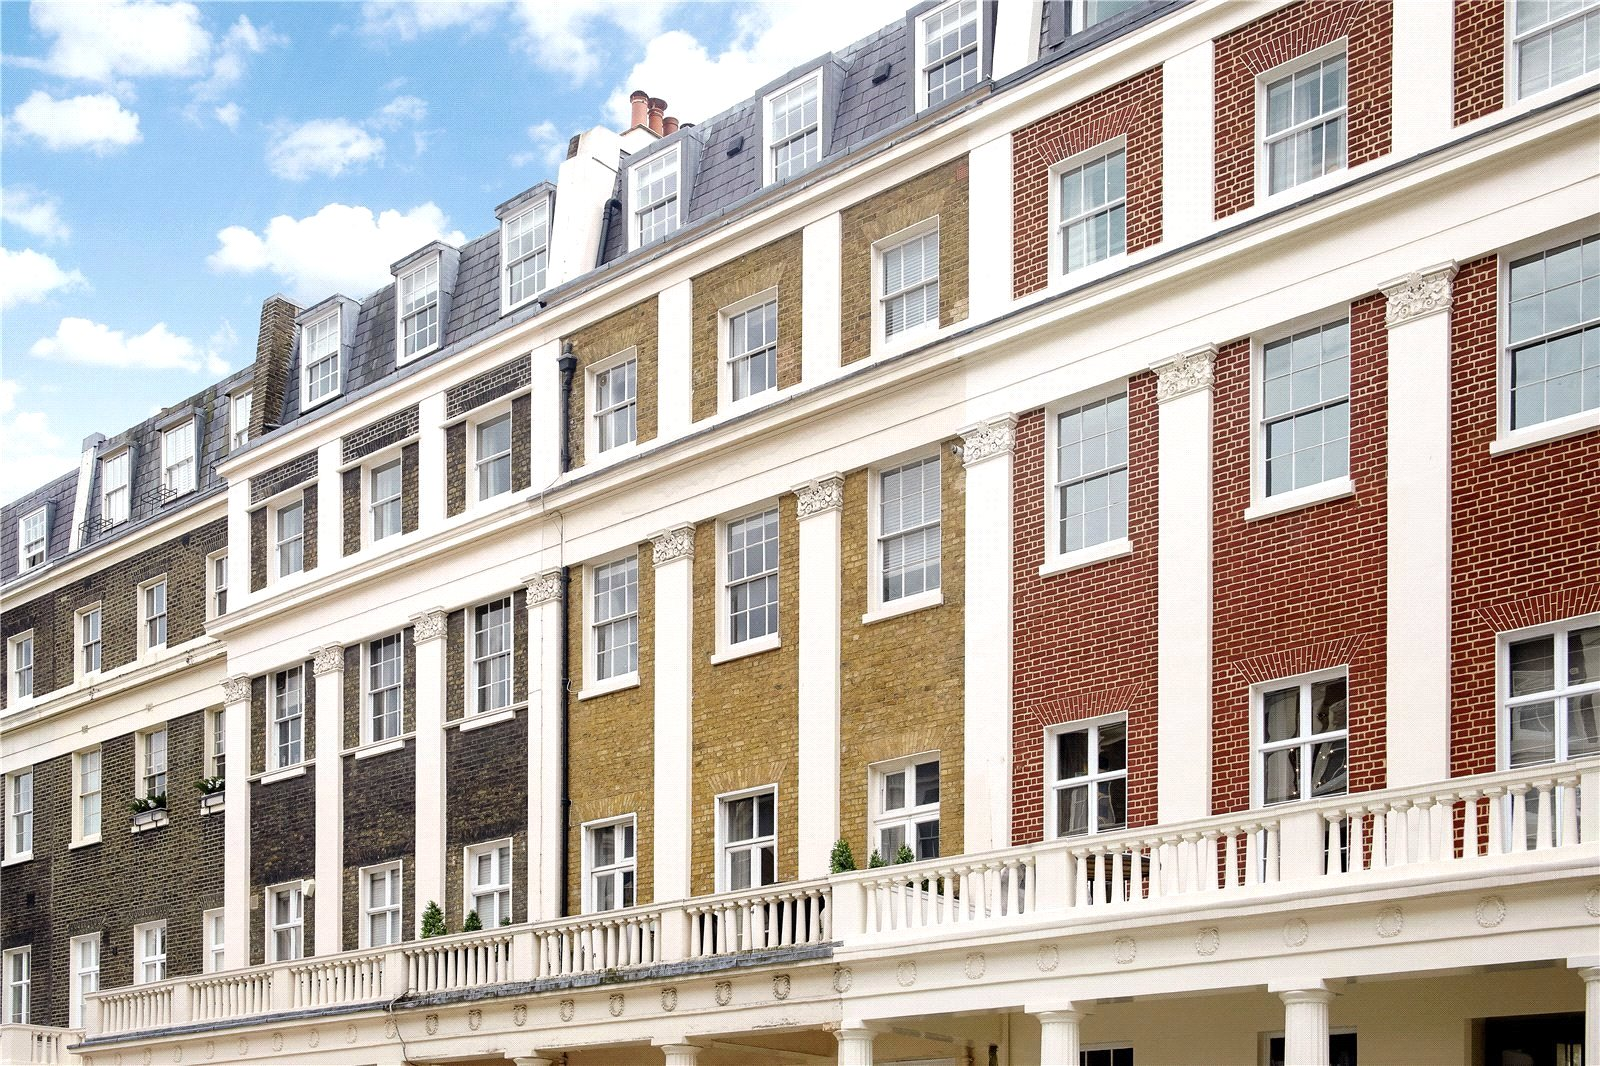 Apartment for Sale at Eaton Place, Belgravia, London, SW1X Eaton Place, Belgravia, London, SW1X